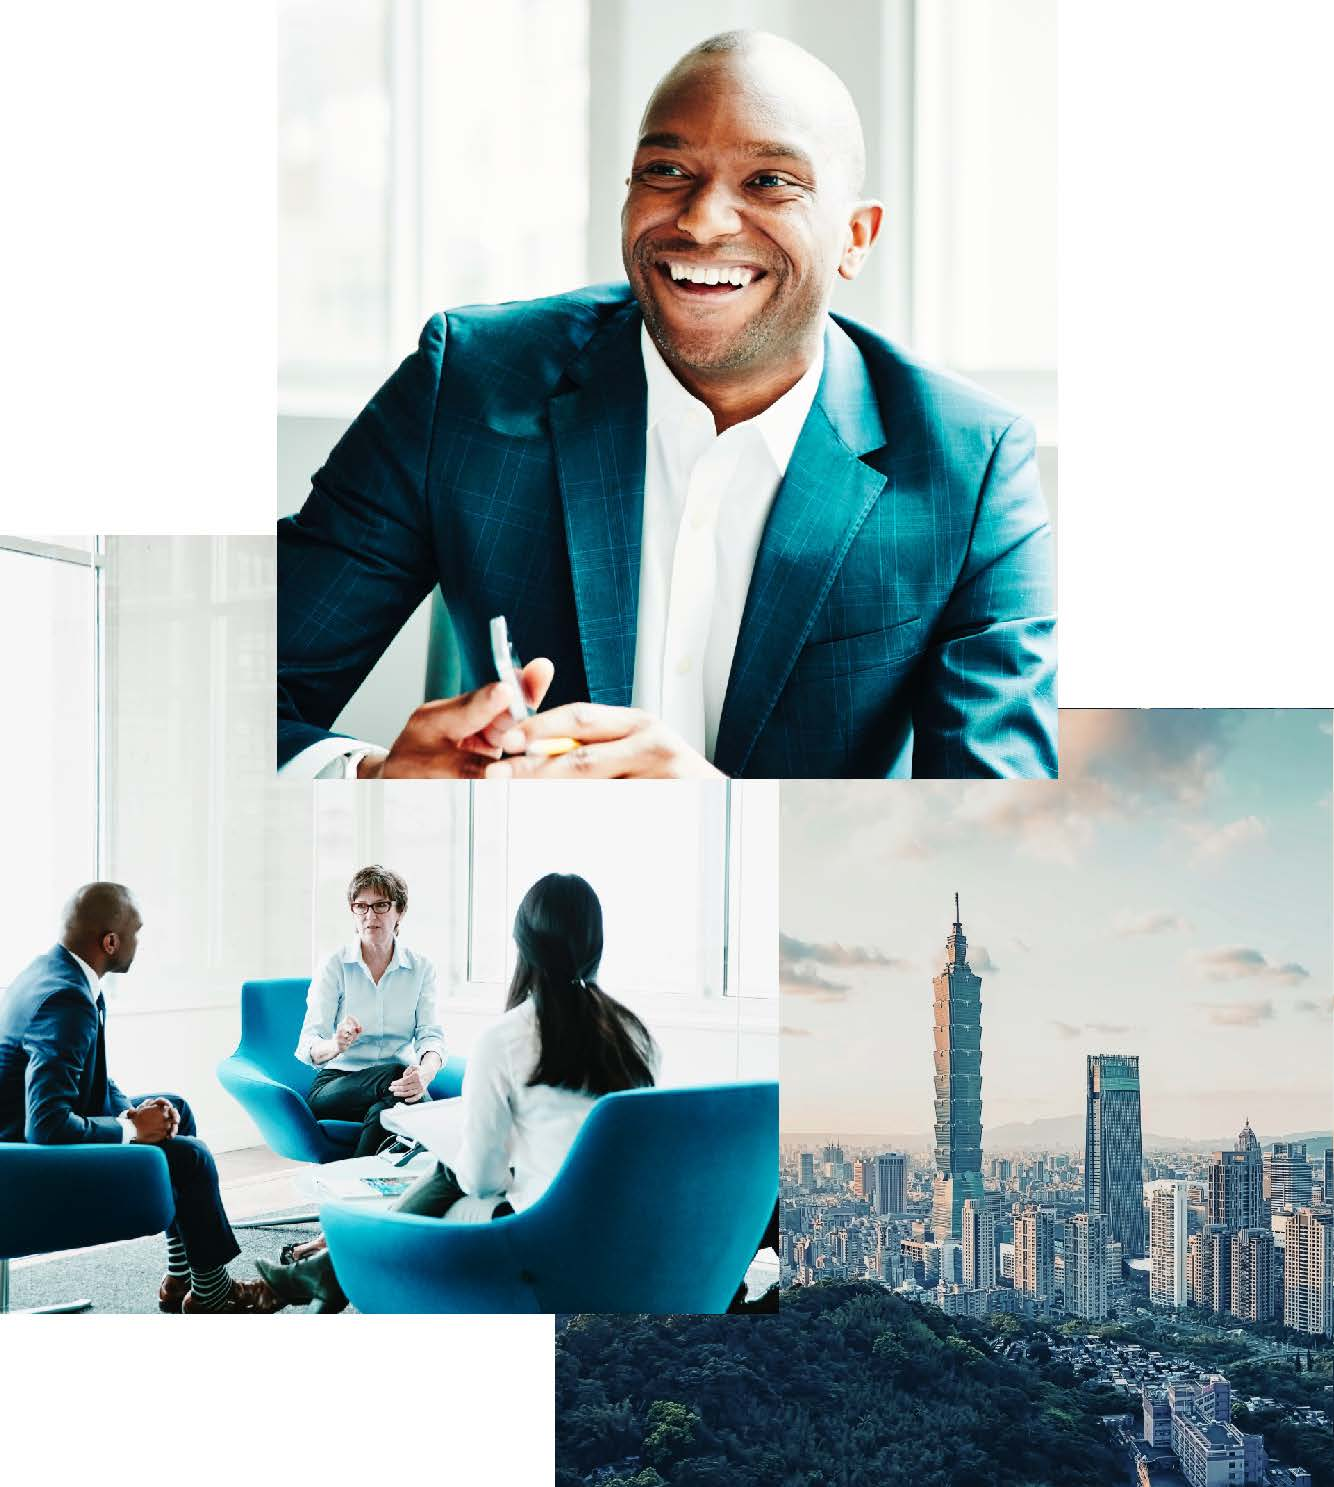 Triad of images, black man smiling, three people sitting in chairs having a business meeting and city scape of Taiwan